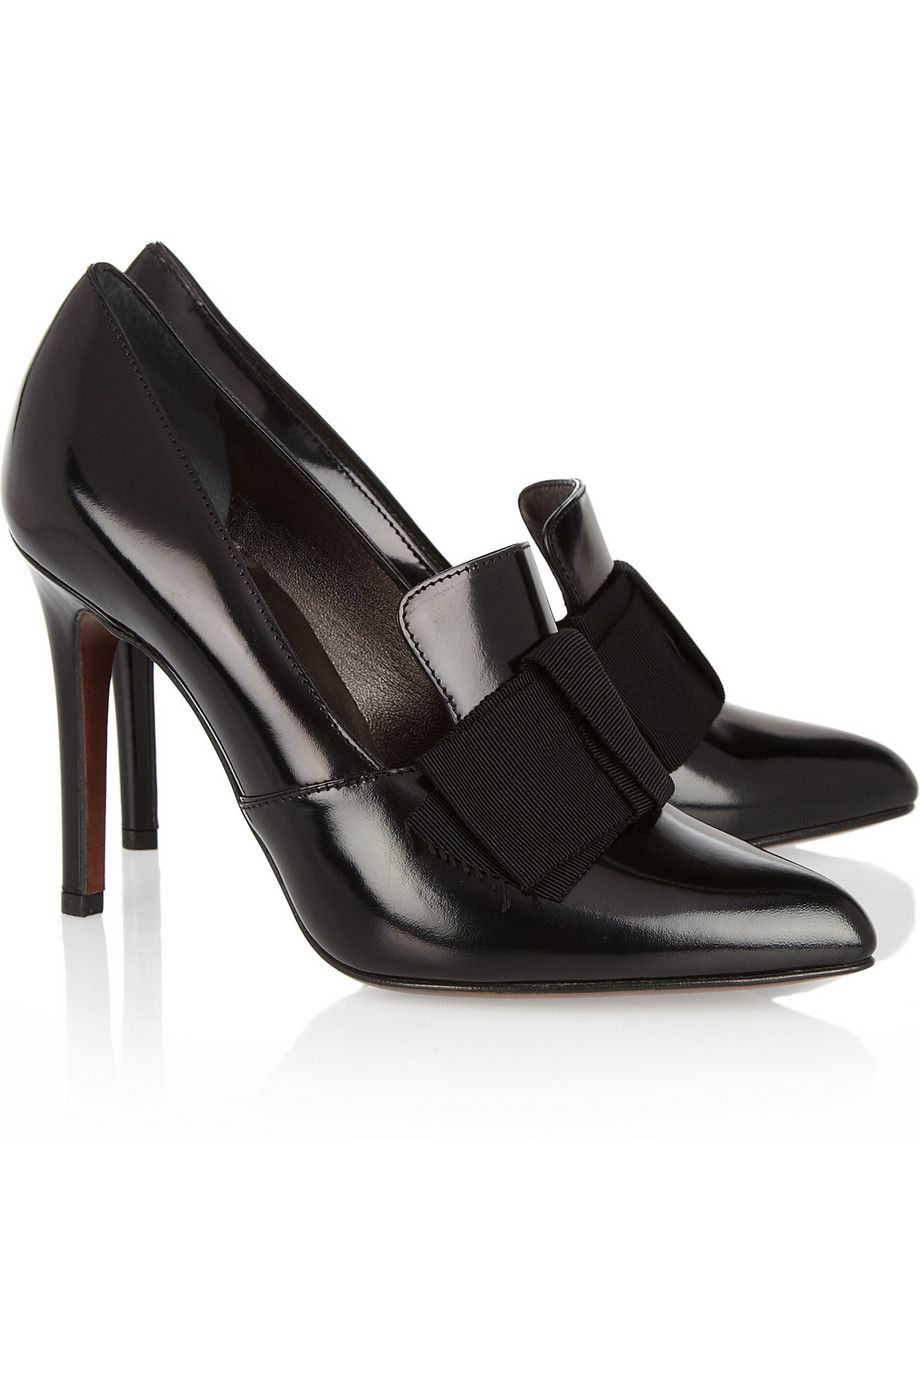 Lanvin | Glossed black leather loafer-style pumpes #shoes